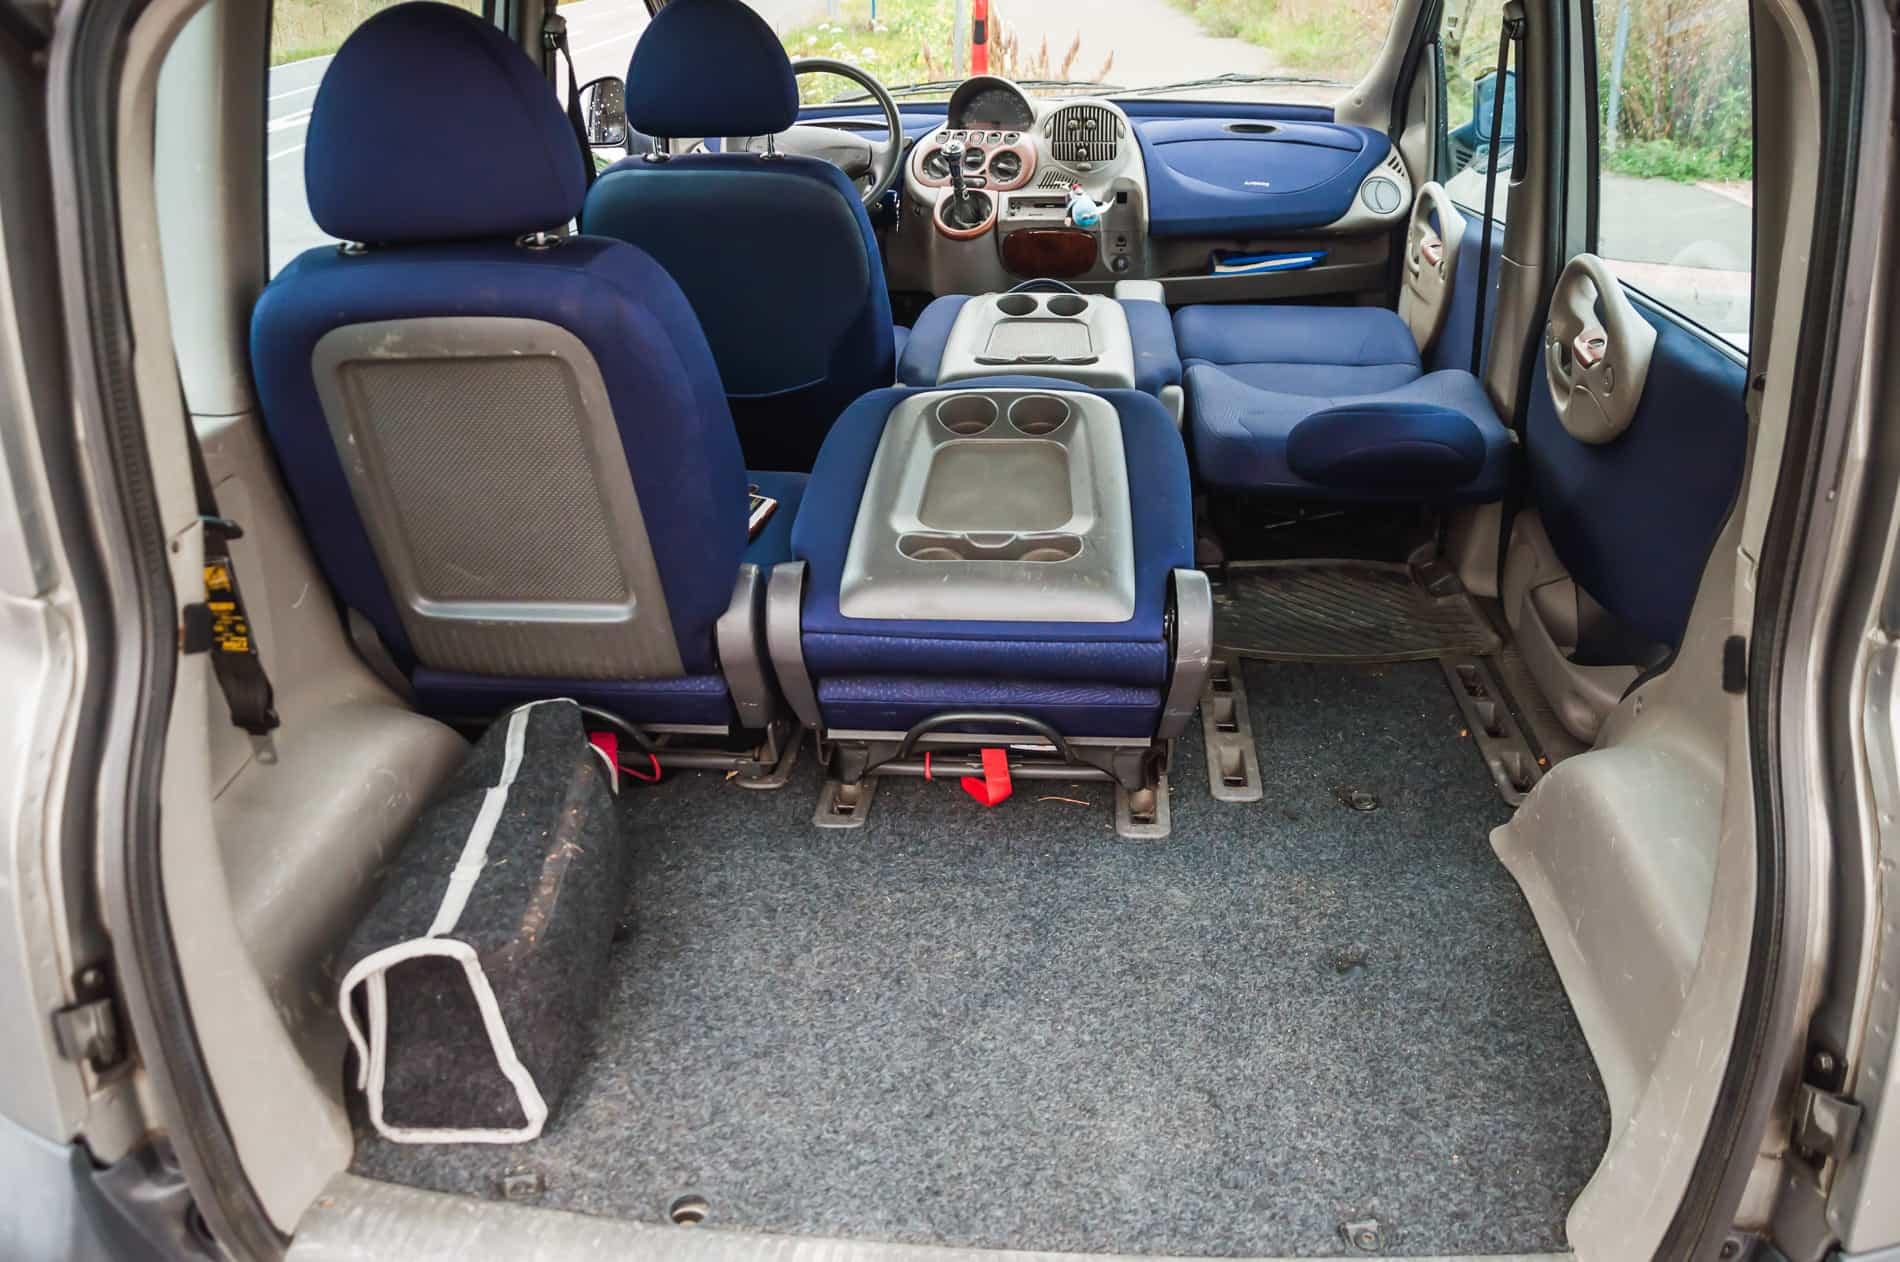 Fiat Multipla (17 of 23)